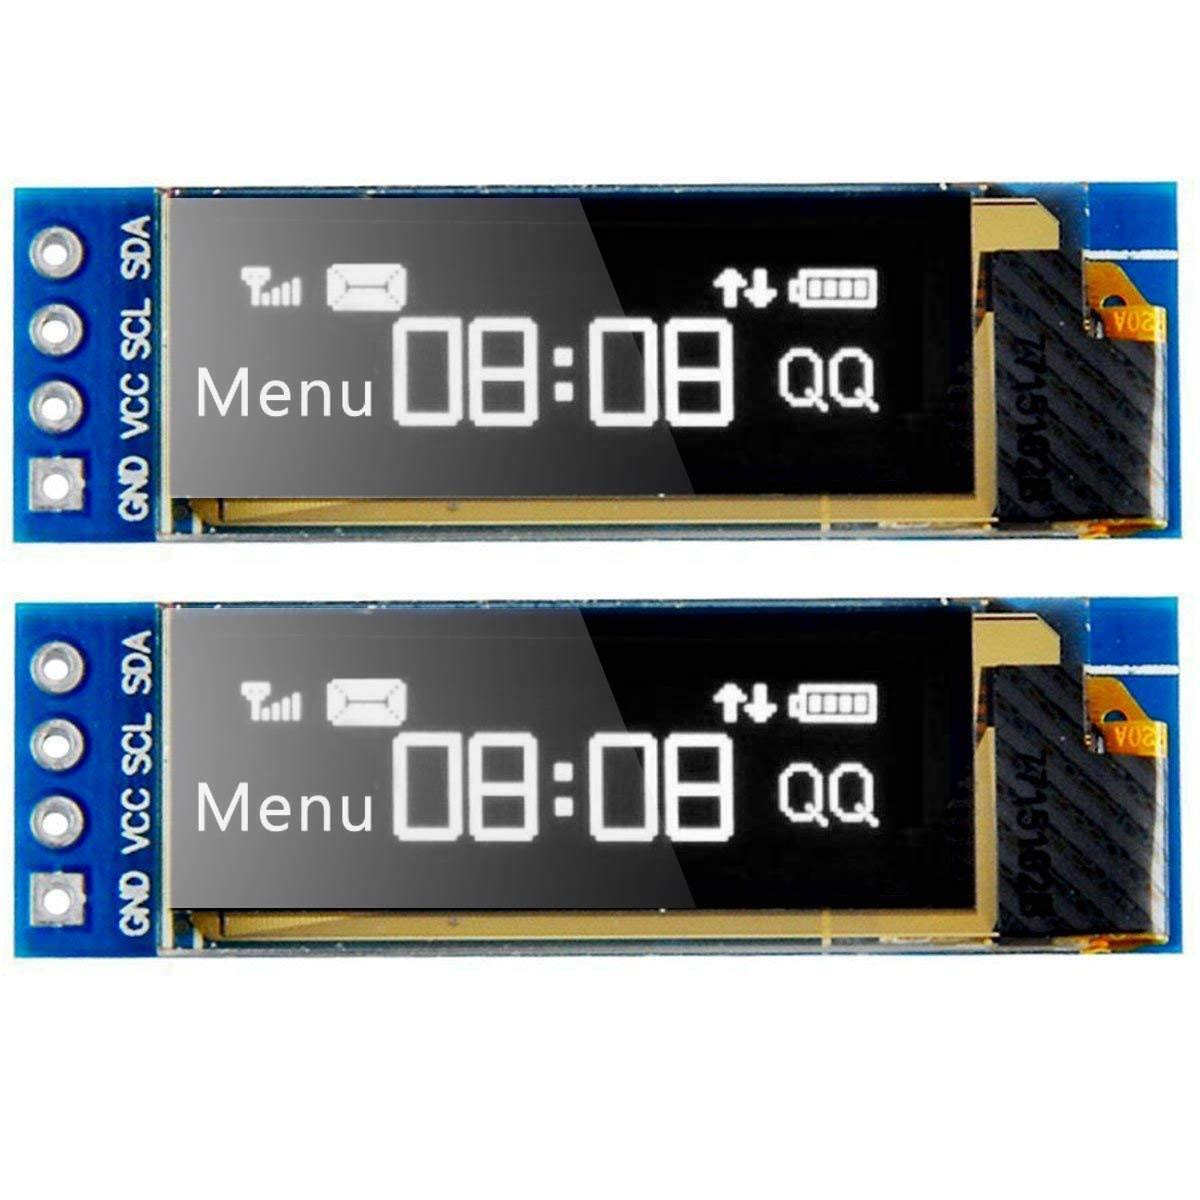 MakerFocus 2pcs I2C OLED Display Module 0 91 Inch I2C SSD1306 OLED Display  Module White I2C OLED Screen Driver DC 3 3V~5V for Arduino